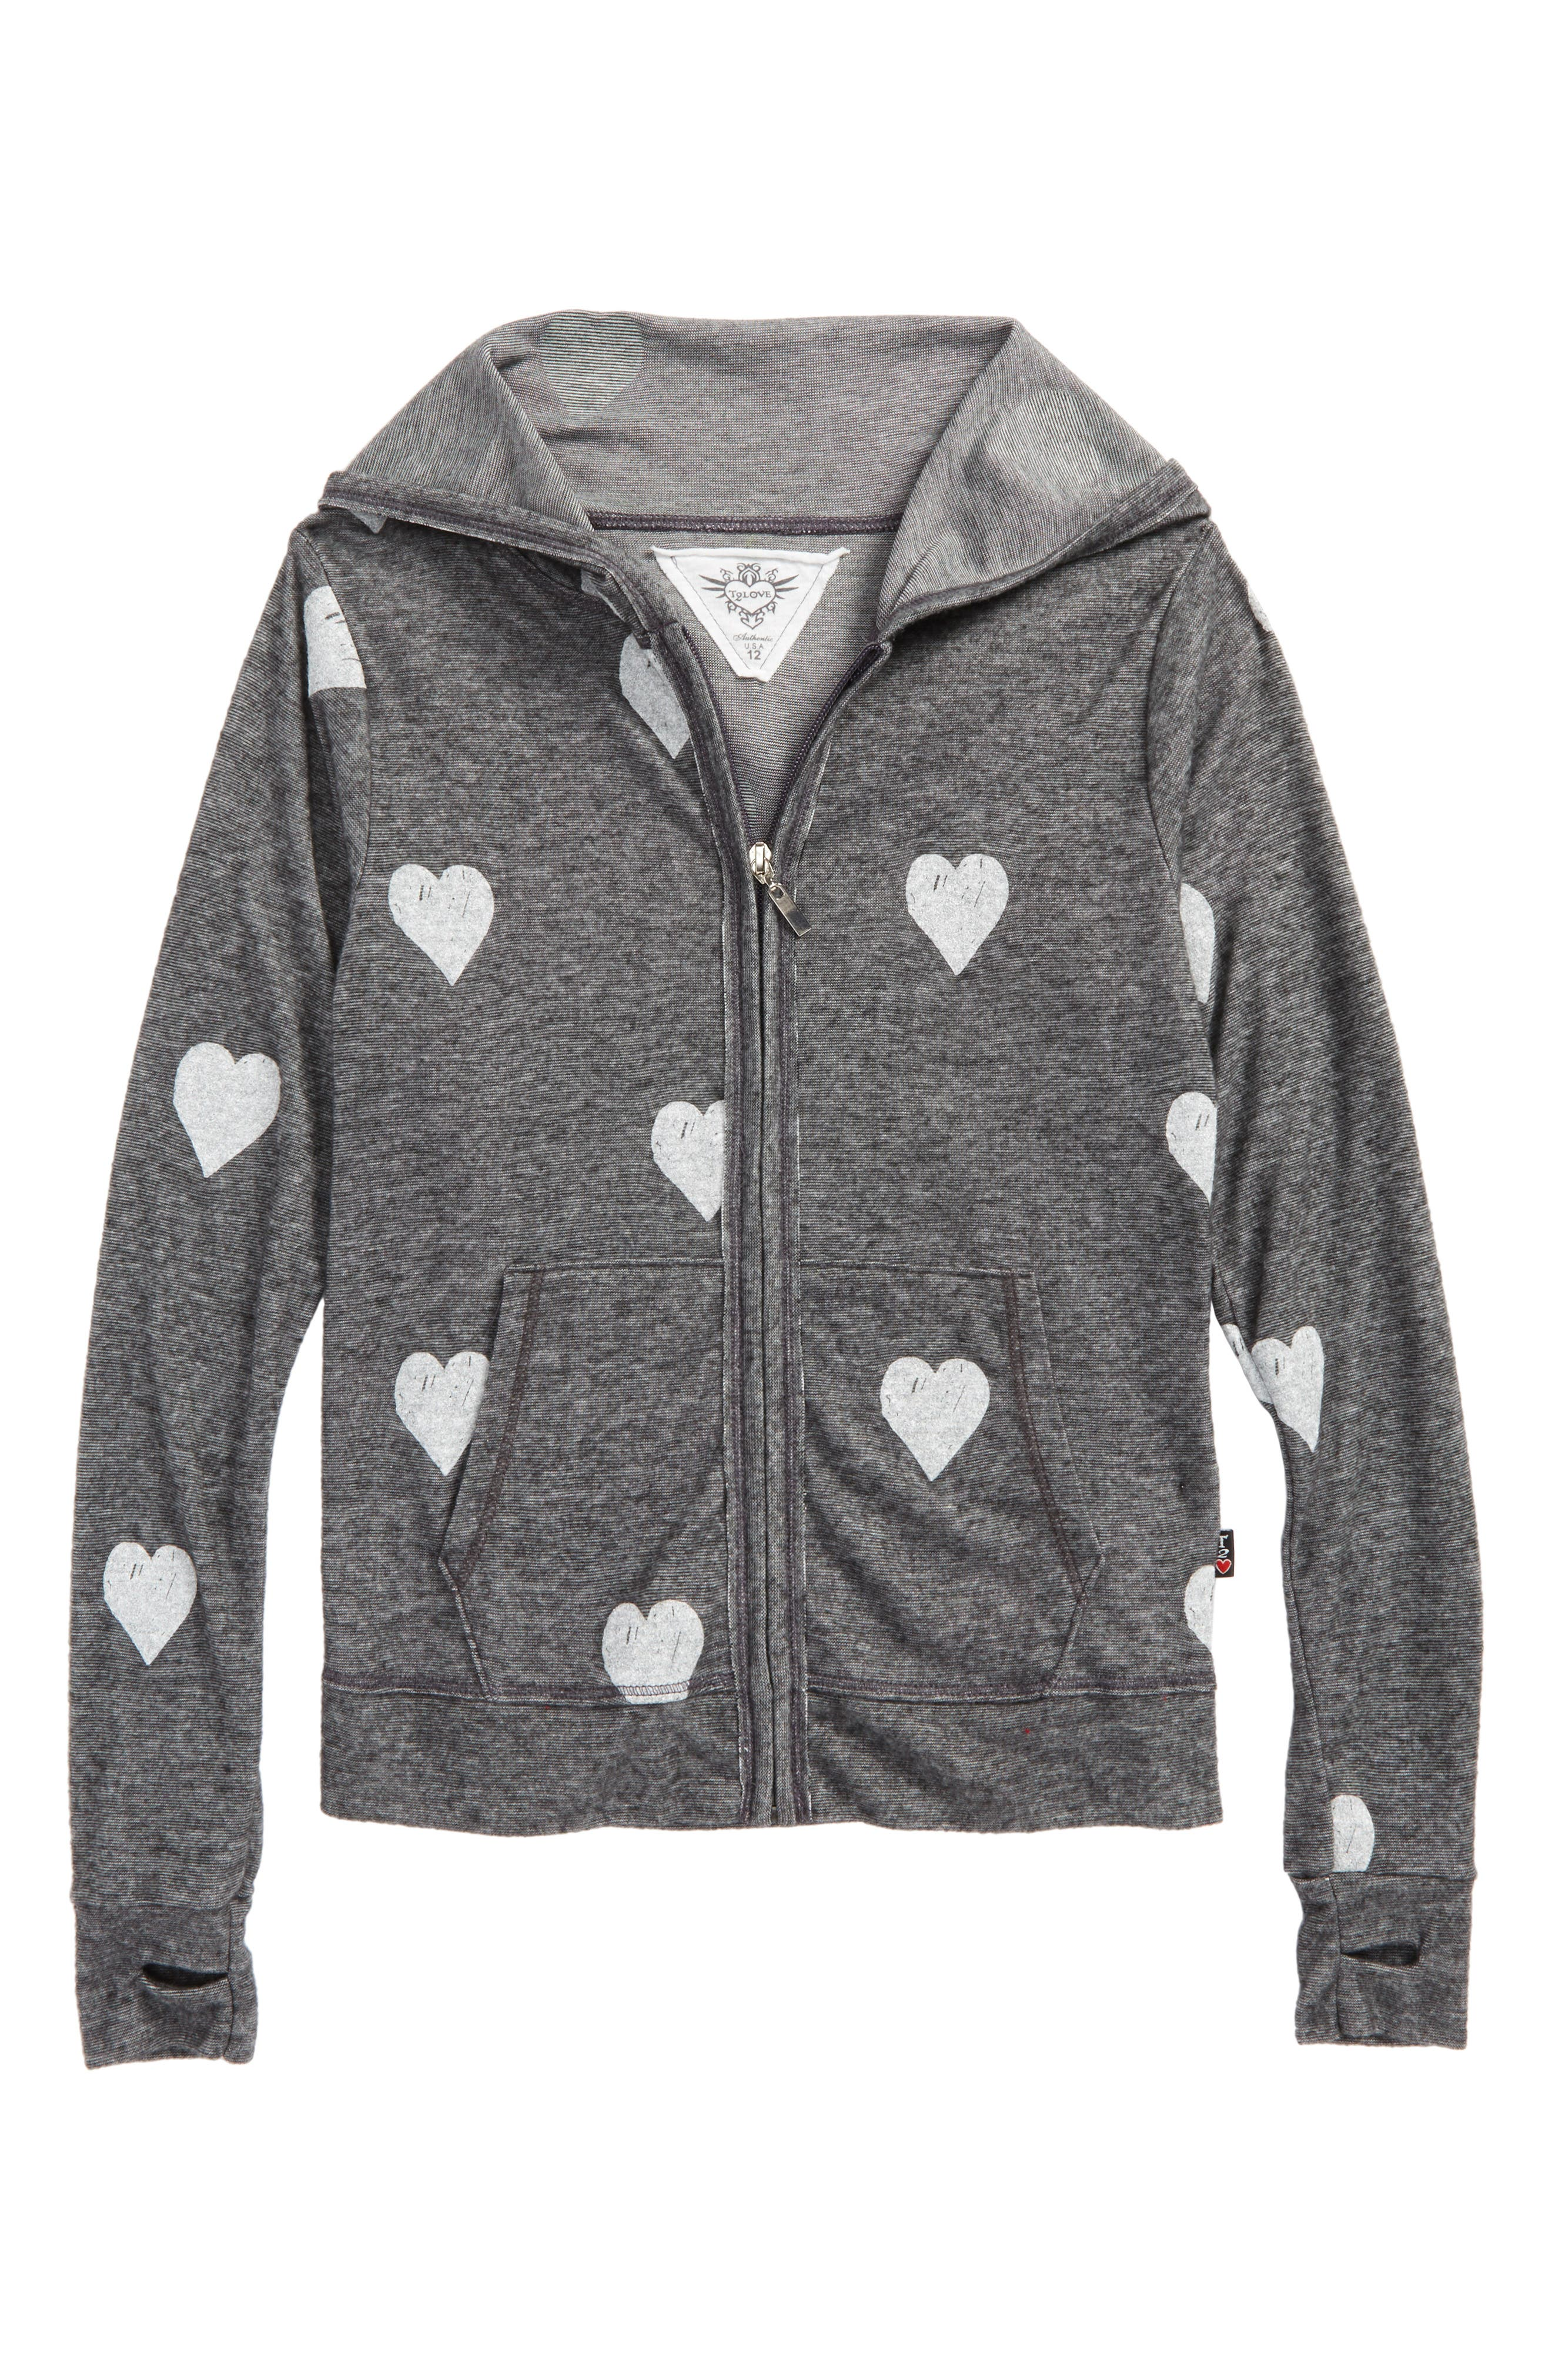 Main Image - T2 Love Allover Heart Zip Hoodie (Big Girls)